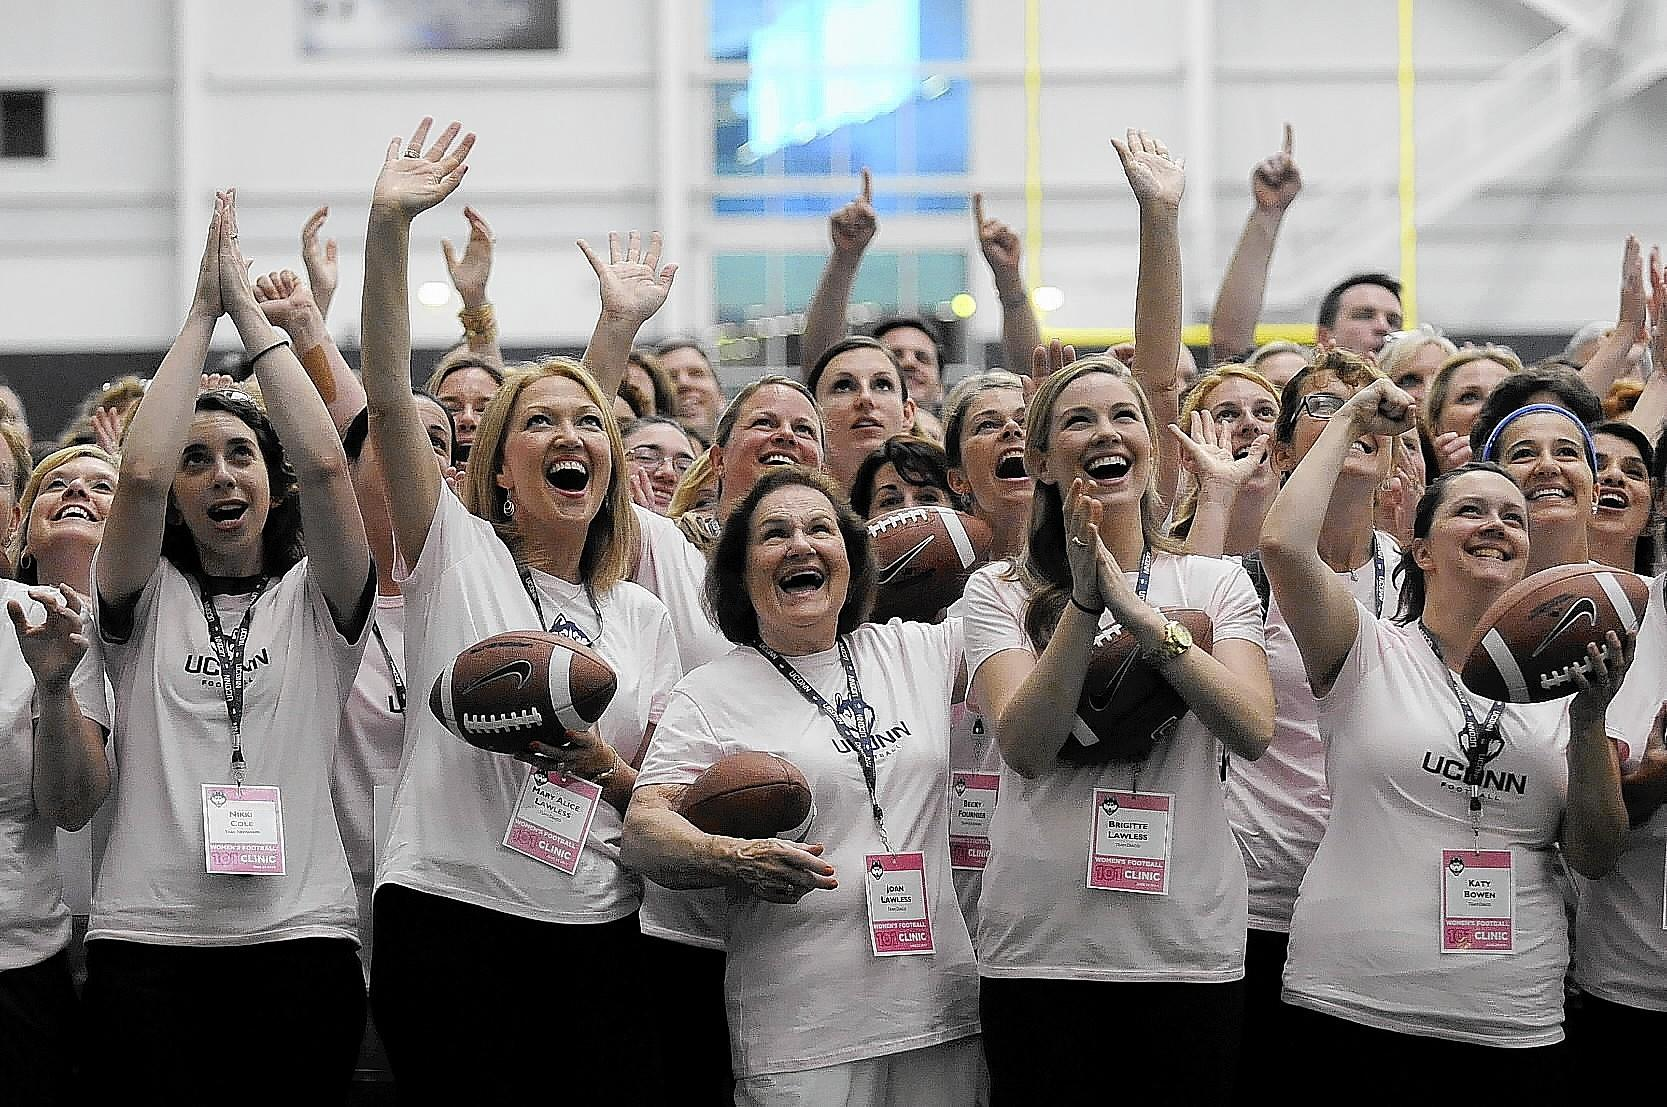 More than 200 women attended a football clinic run by the UConn football team Wednesday night at the Shenkman Center, including Joan Lawless, at center, who was celebrating her 80th birthday. With are her daughter-in-law Mary Alice, at left, and niece Brigette, at right. Mary Alice's daughter Sarah is the Director of Football Operations at UConn. The Lawless family drove up from Morristown, NJ.